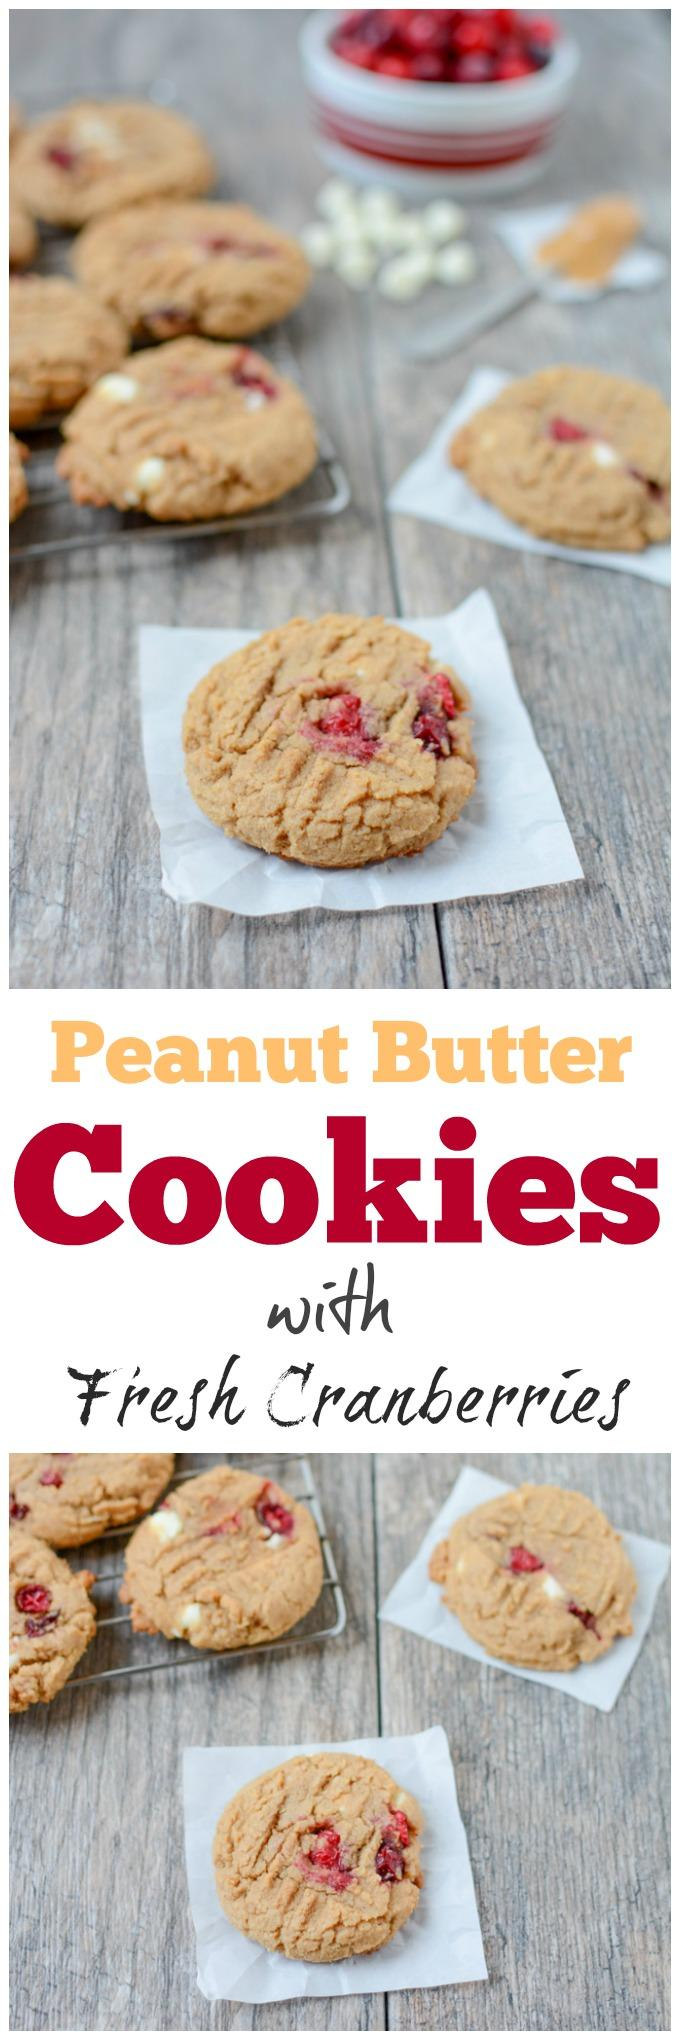 Fresh cranberries aren't just for sauce! These Cranberry Peanut Butter Cookies strike the perfect balance of tart and sweet!